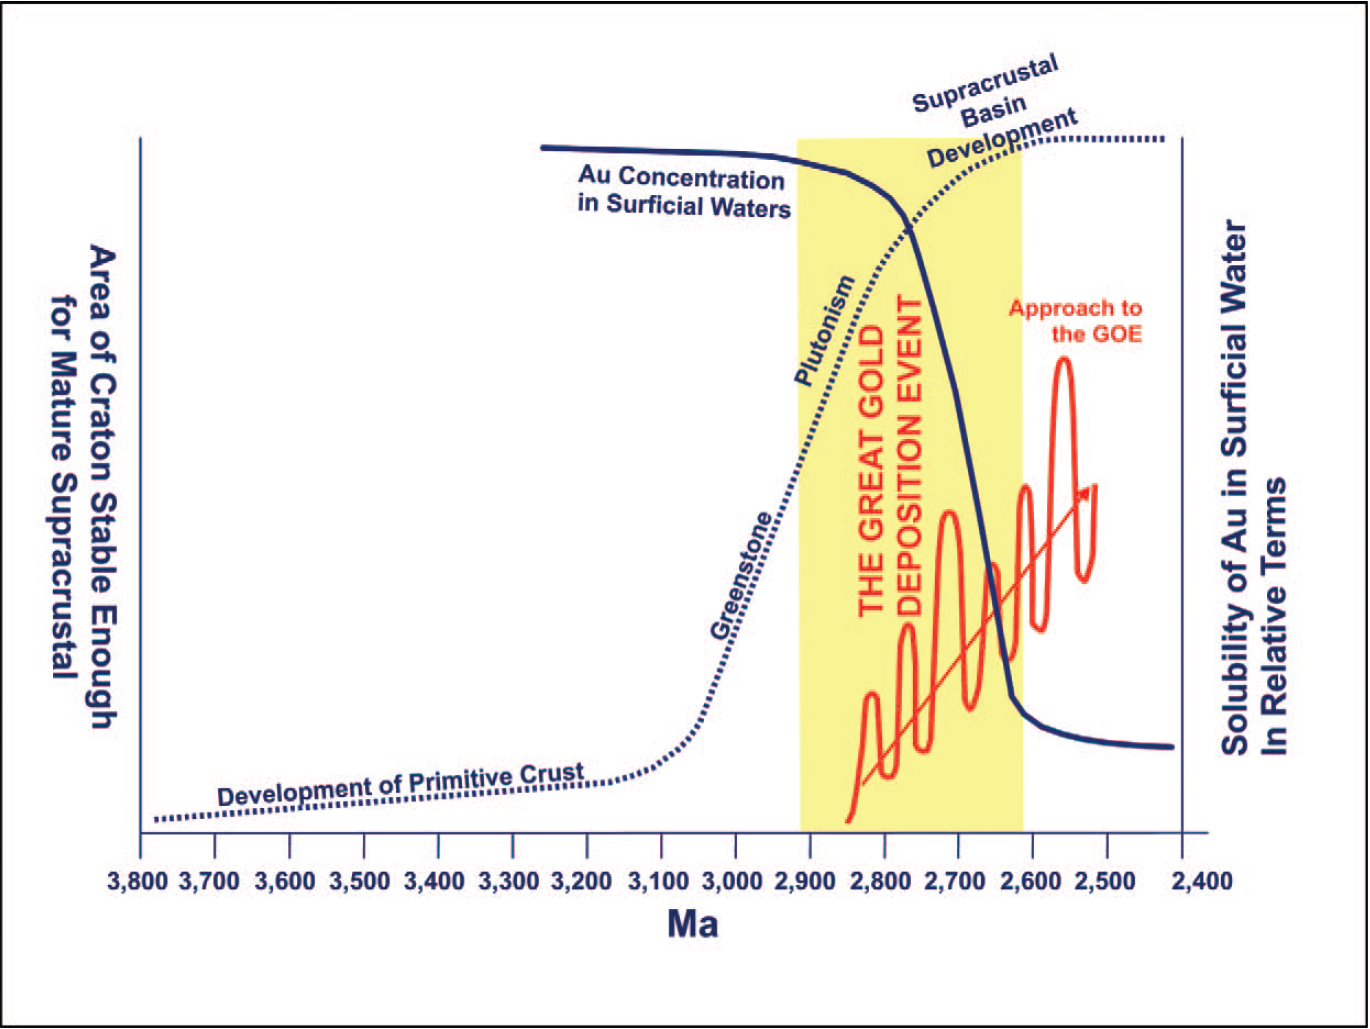 Diagram of the gold deposition event showing the decline in gold in water correlating with the rise of continents. From Horsecroft et al 2011